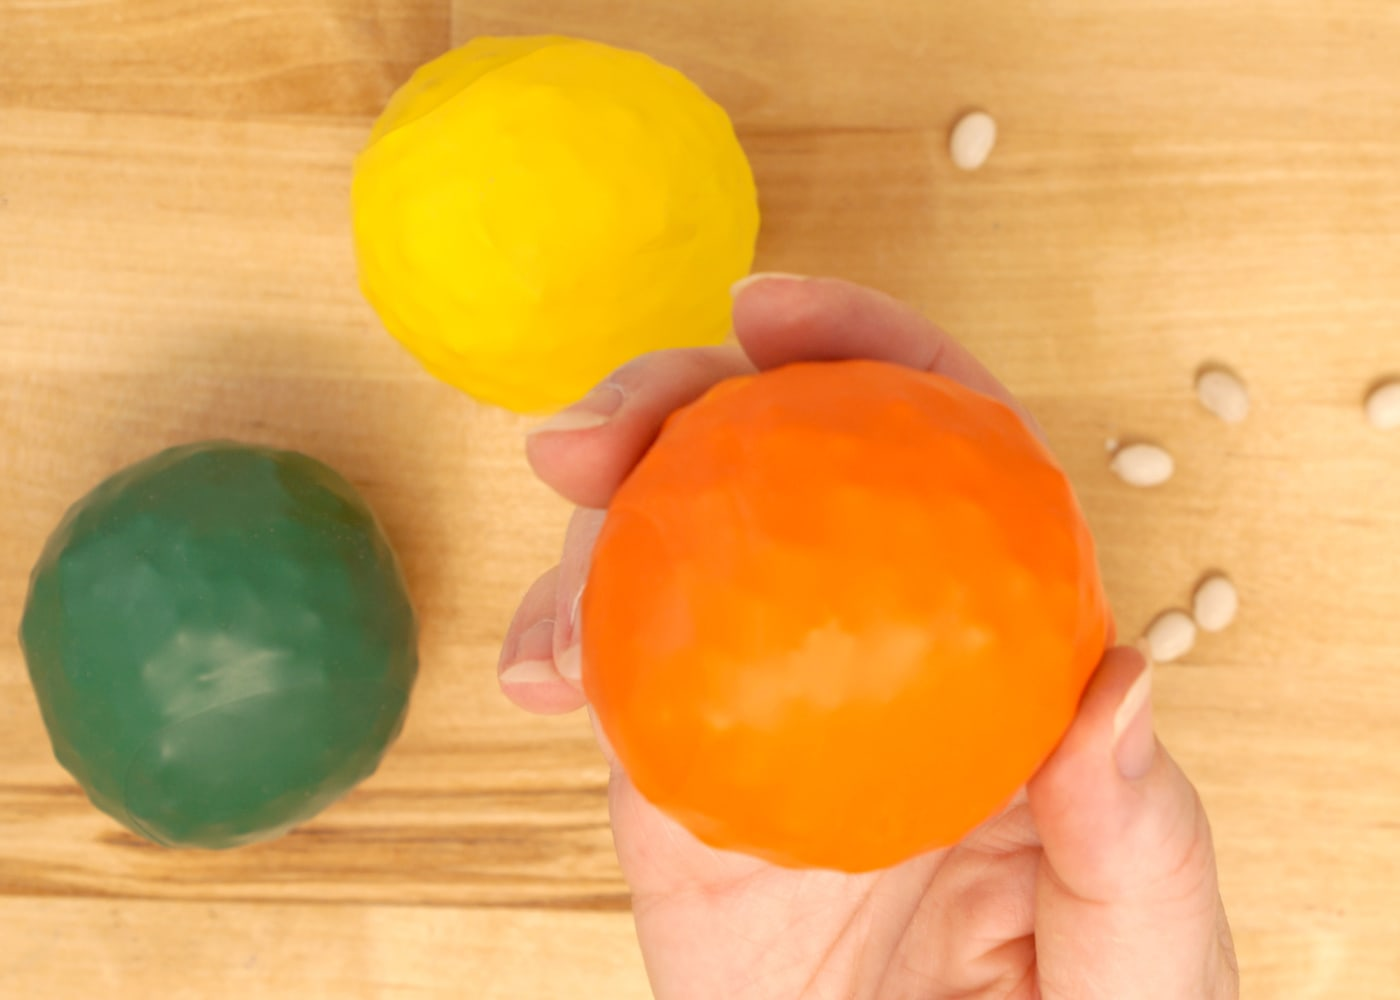 bean balls made of balloons in orange, yellow and green